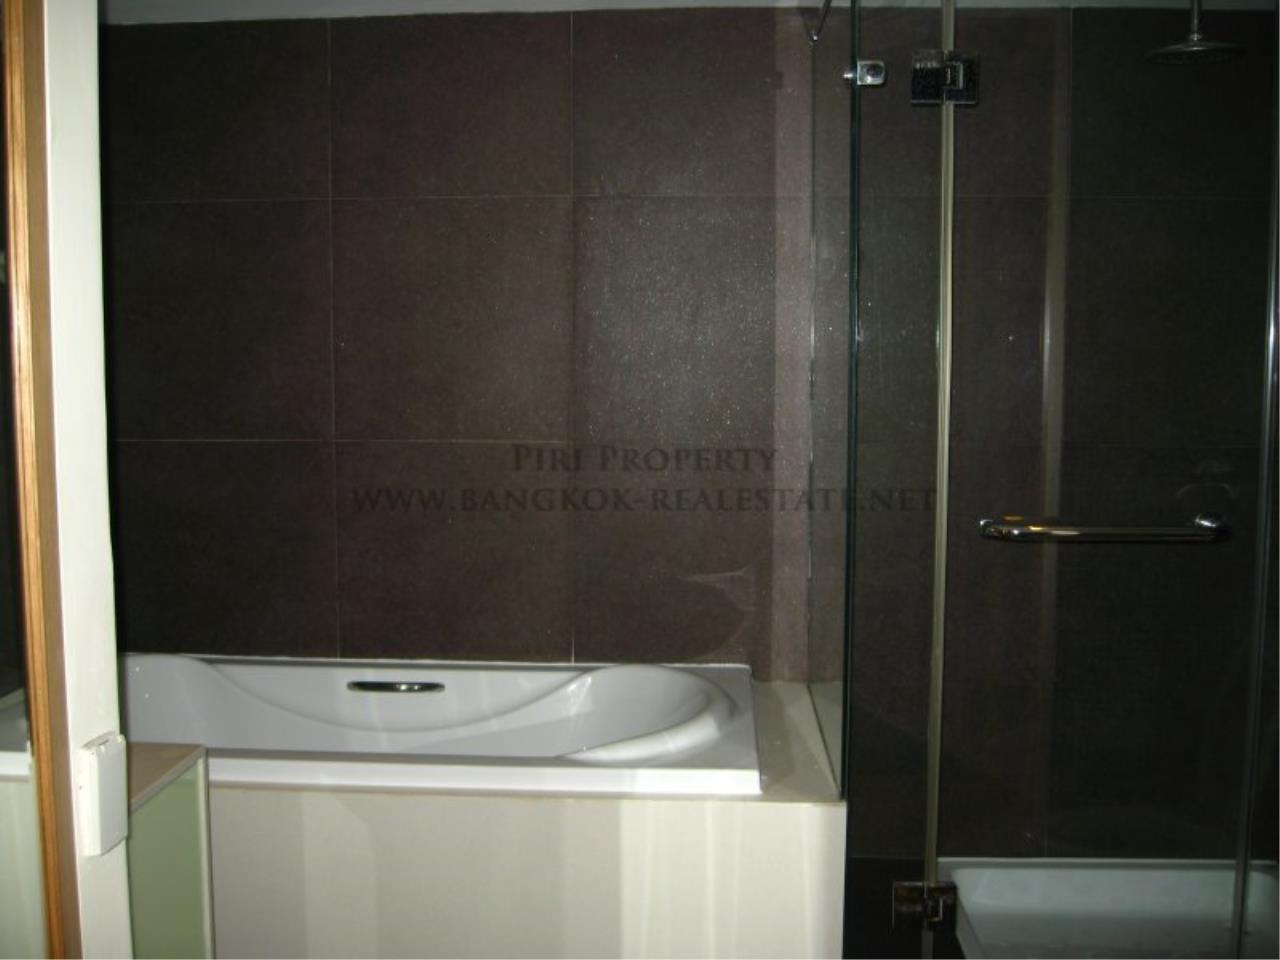 Piri Property Agency's Two Bedroom Condo with direct pool access - 59 Heritage in Ekkamai for Sale 7